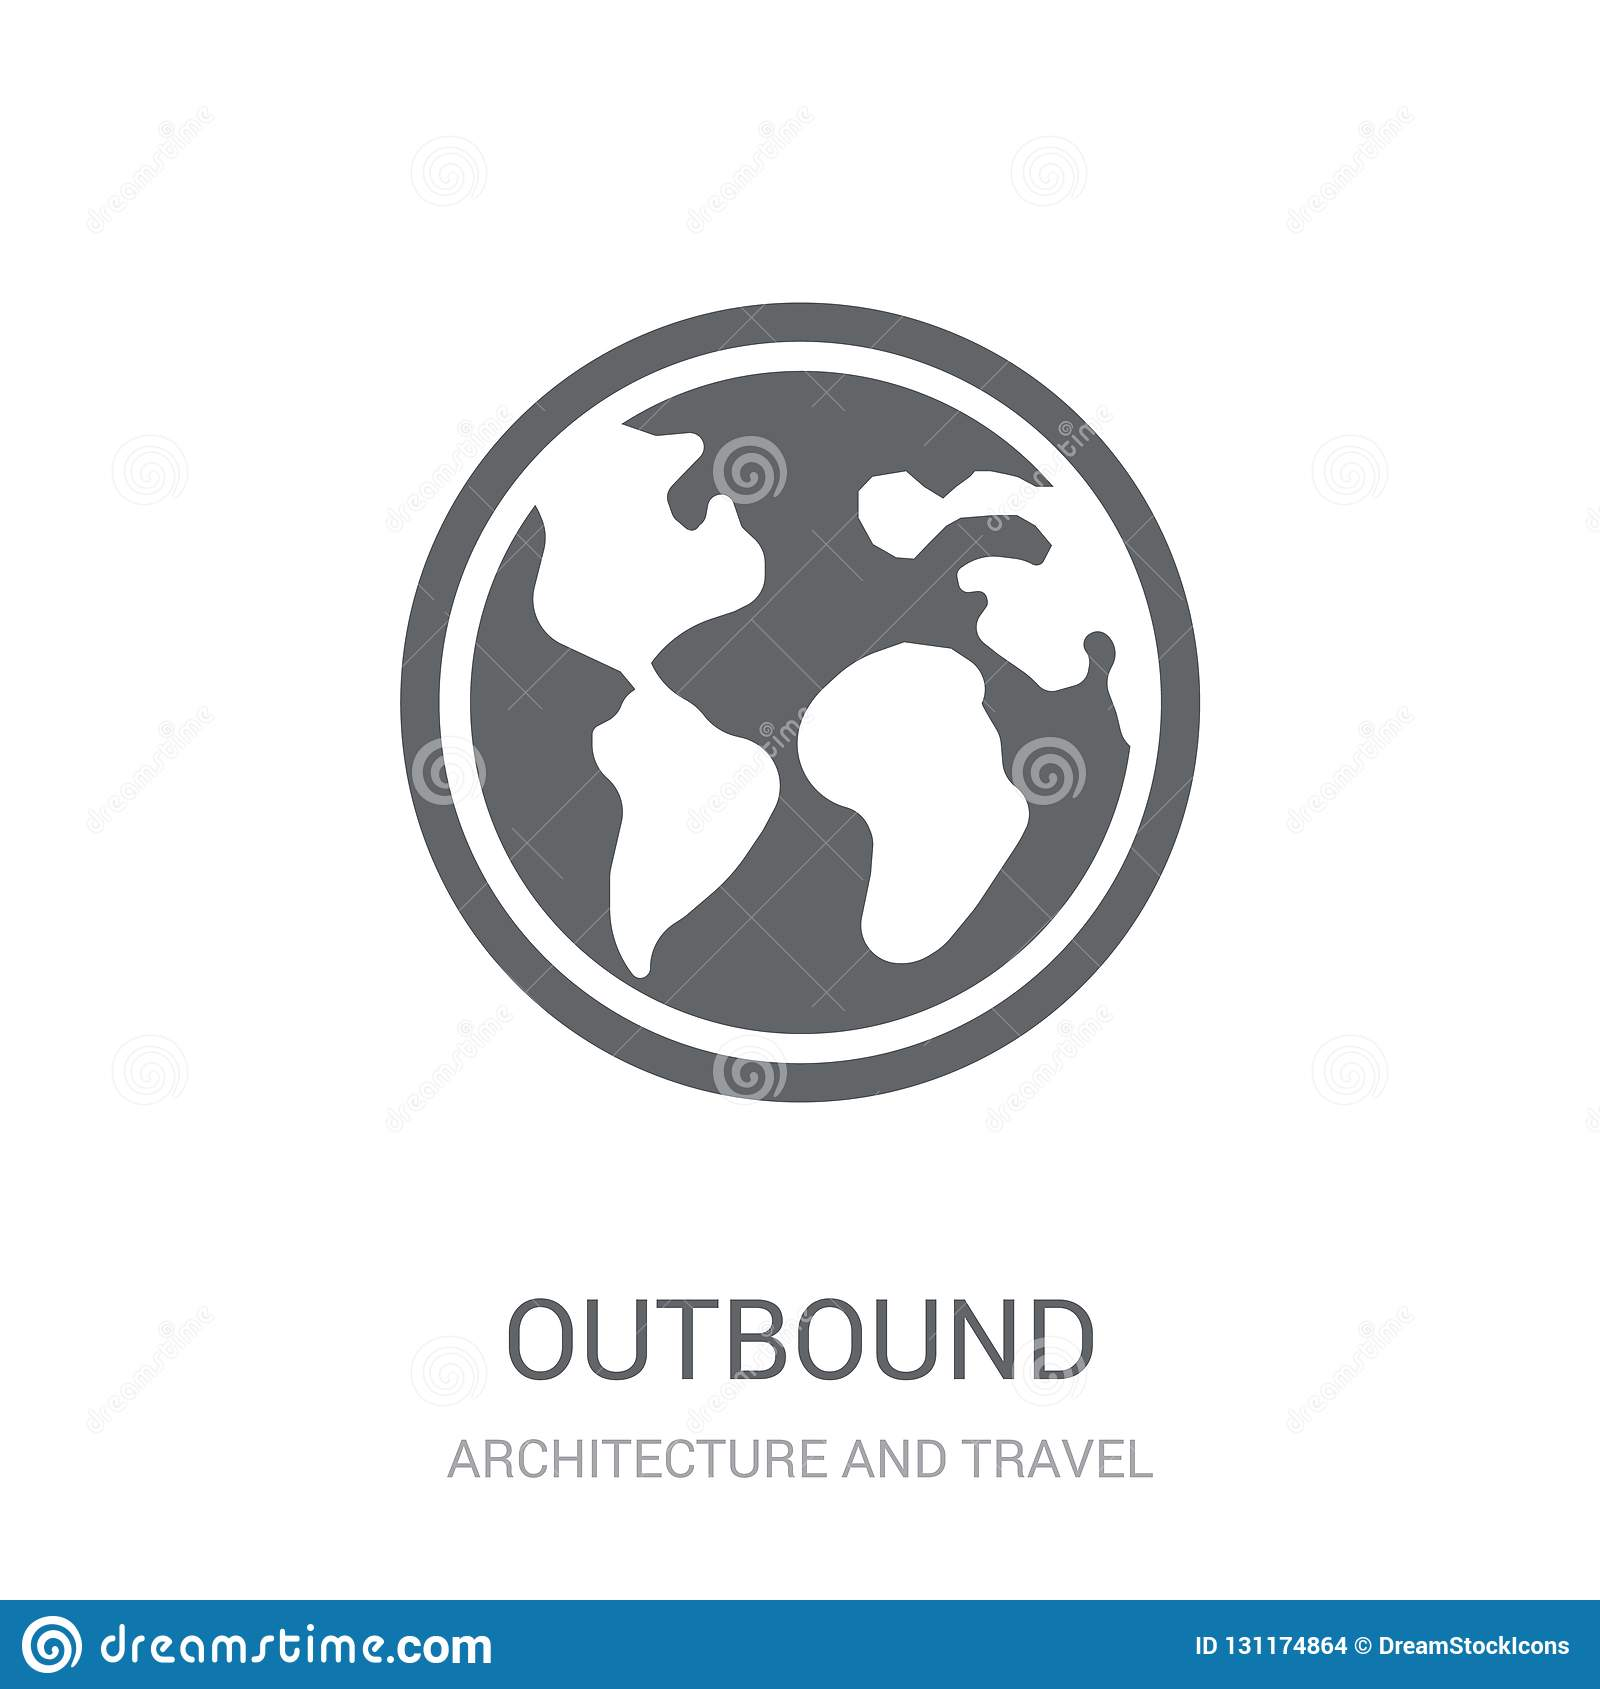 Outbound icon. Trendy Outbound logo concept on white background